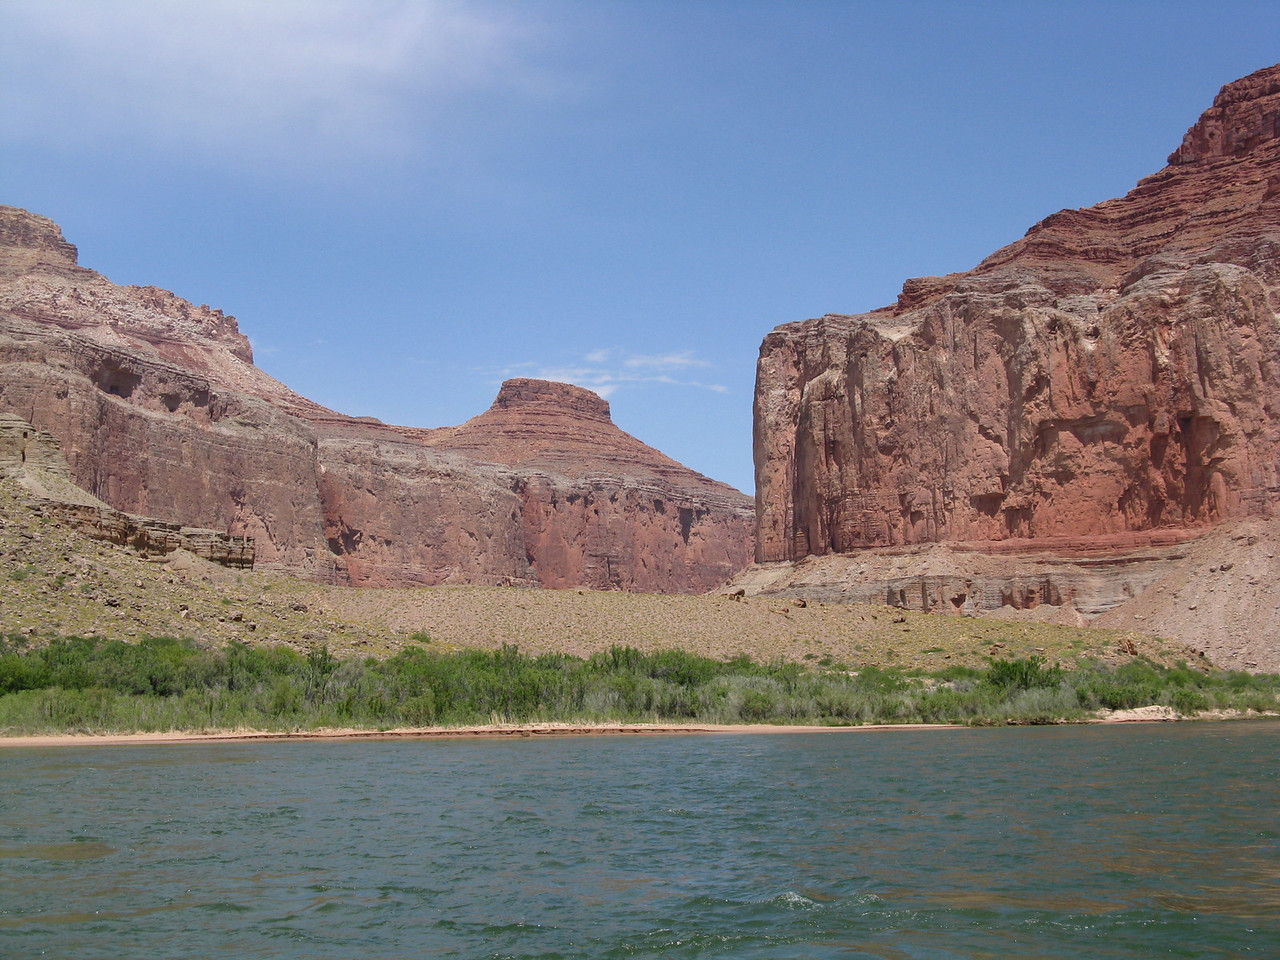 About mile 54.5: another side canyon.